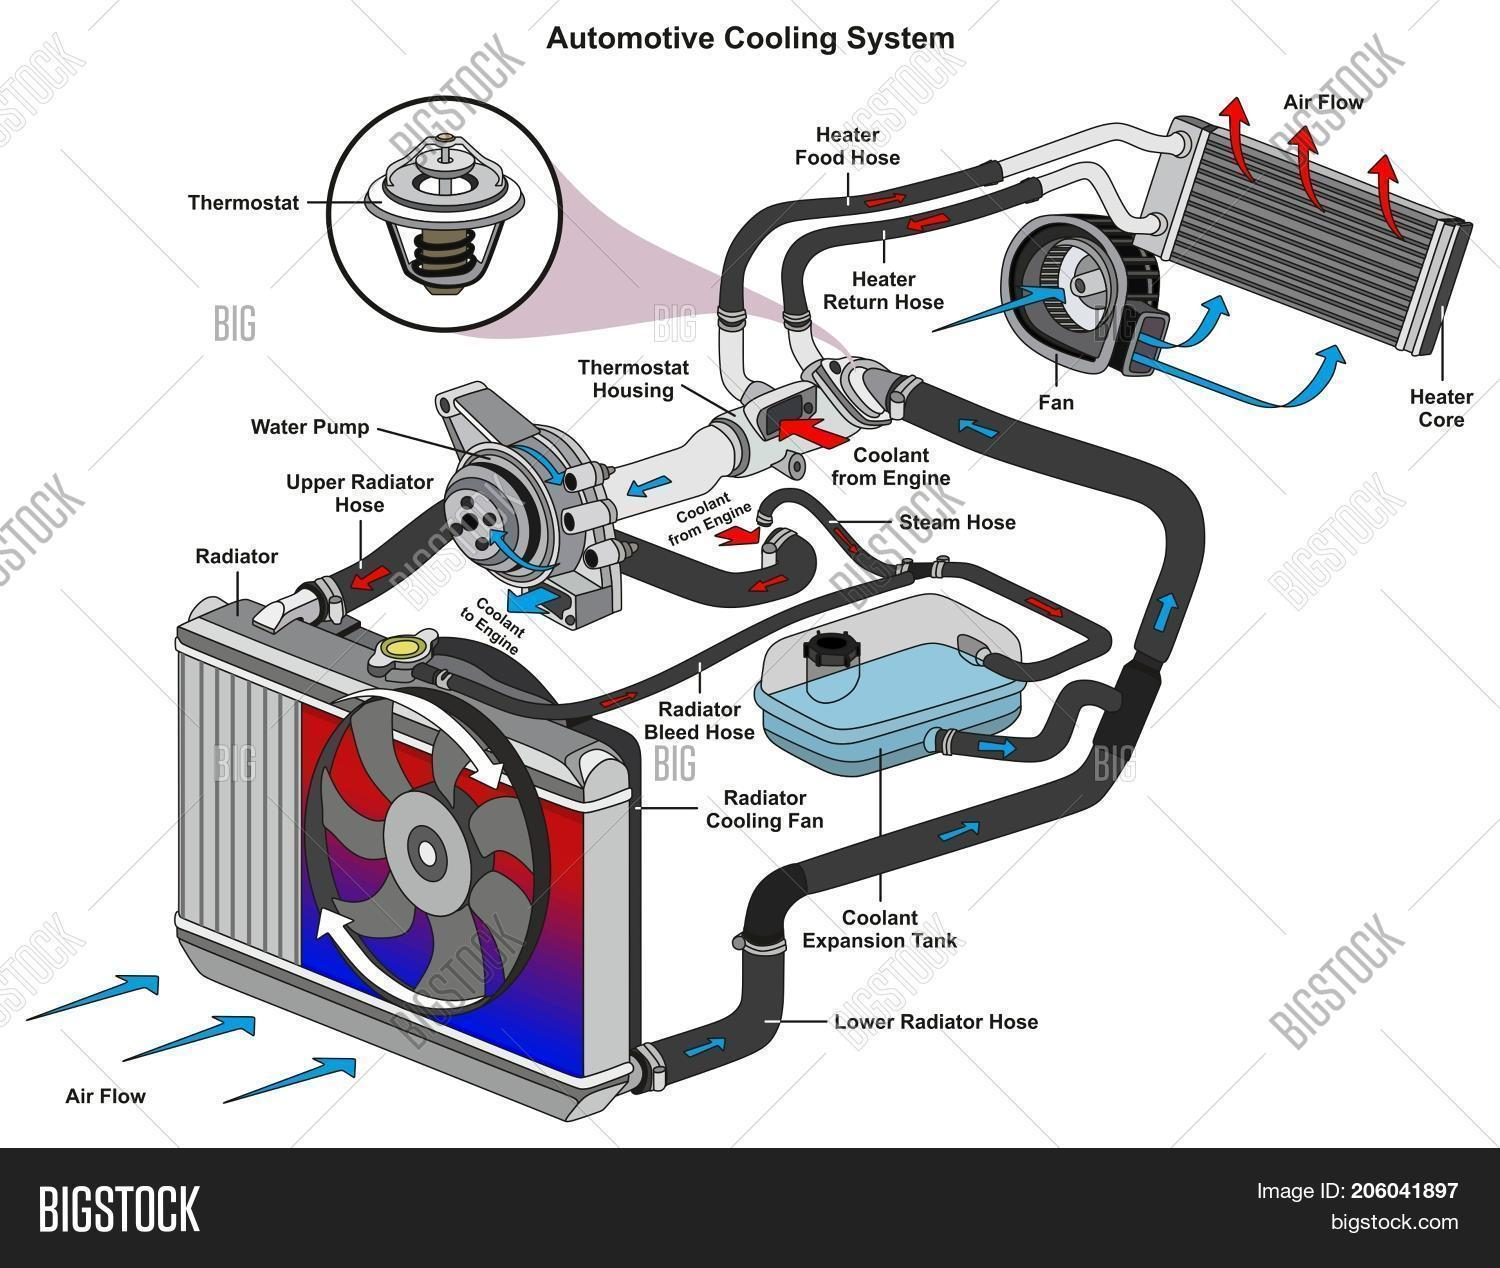 Automotive Cooling Image Amp Photo Free Trial Bigstock